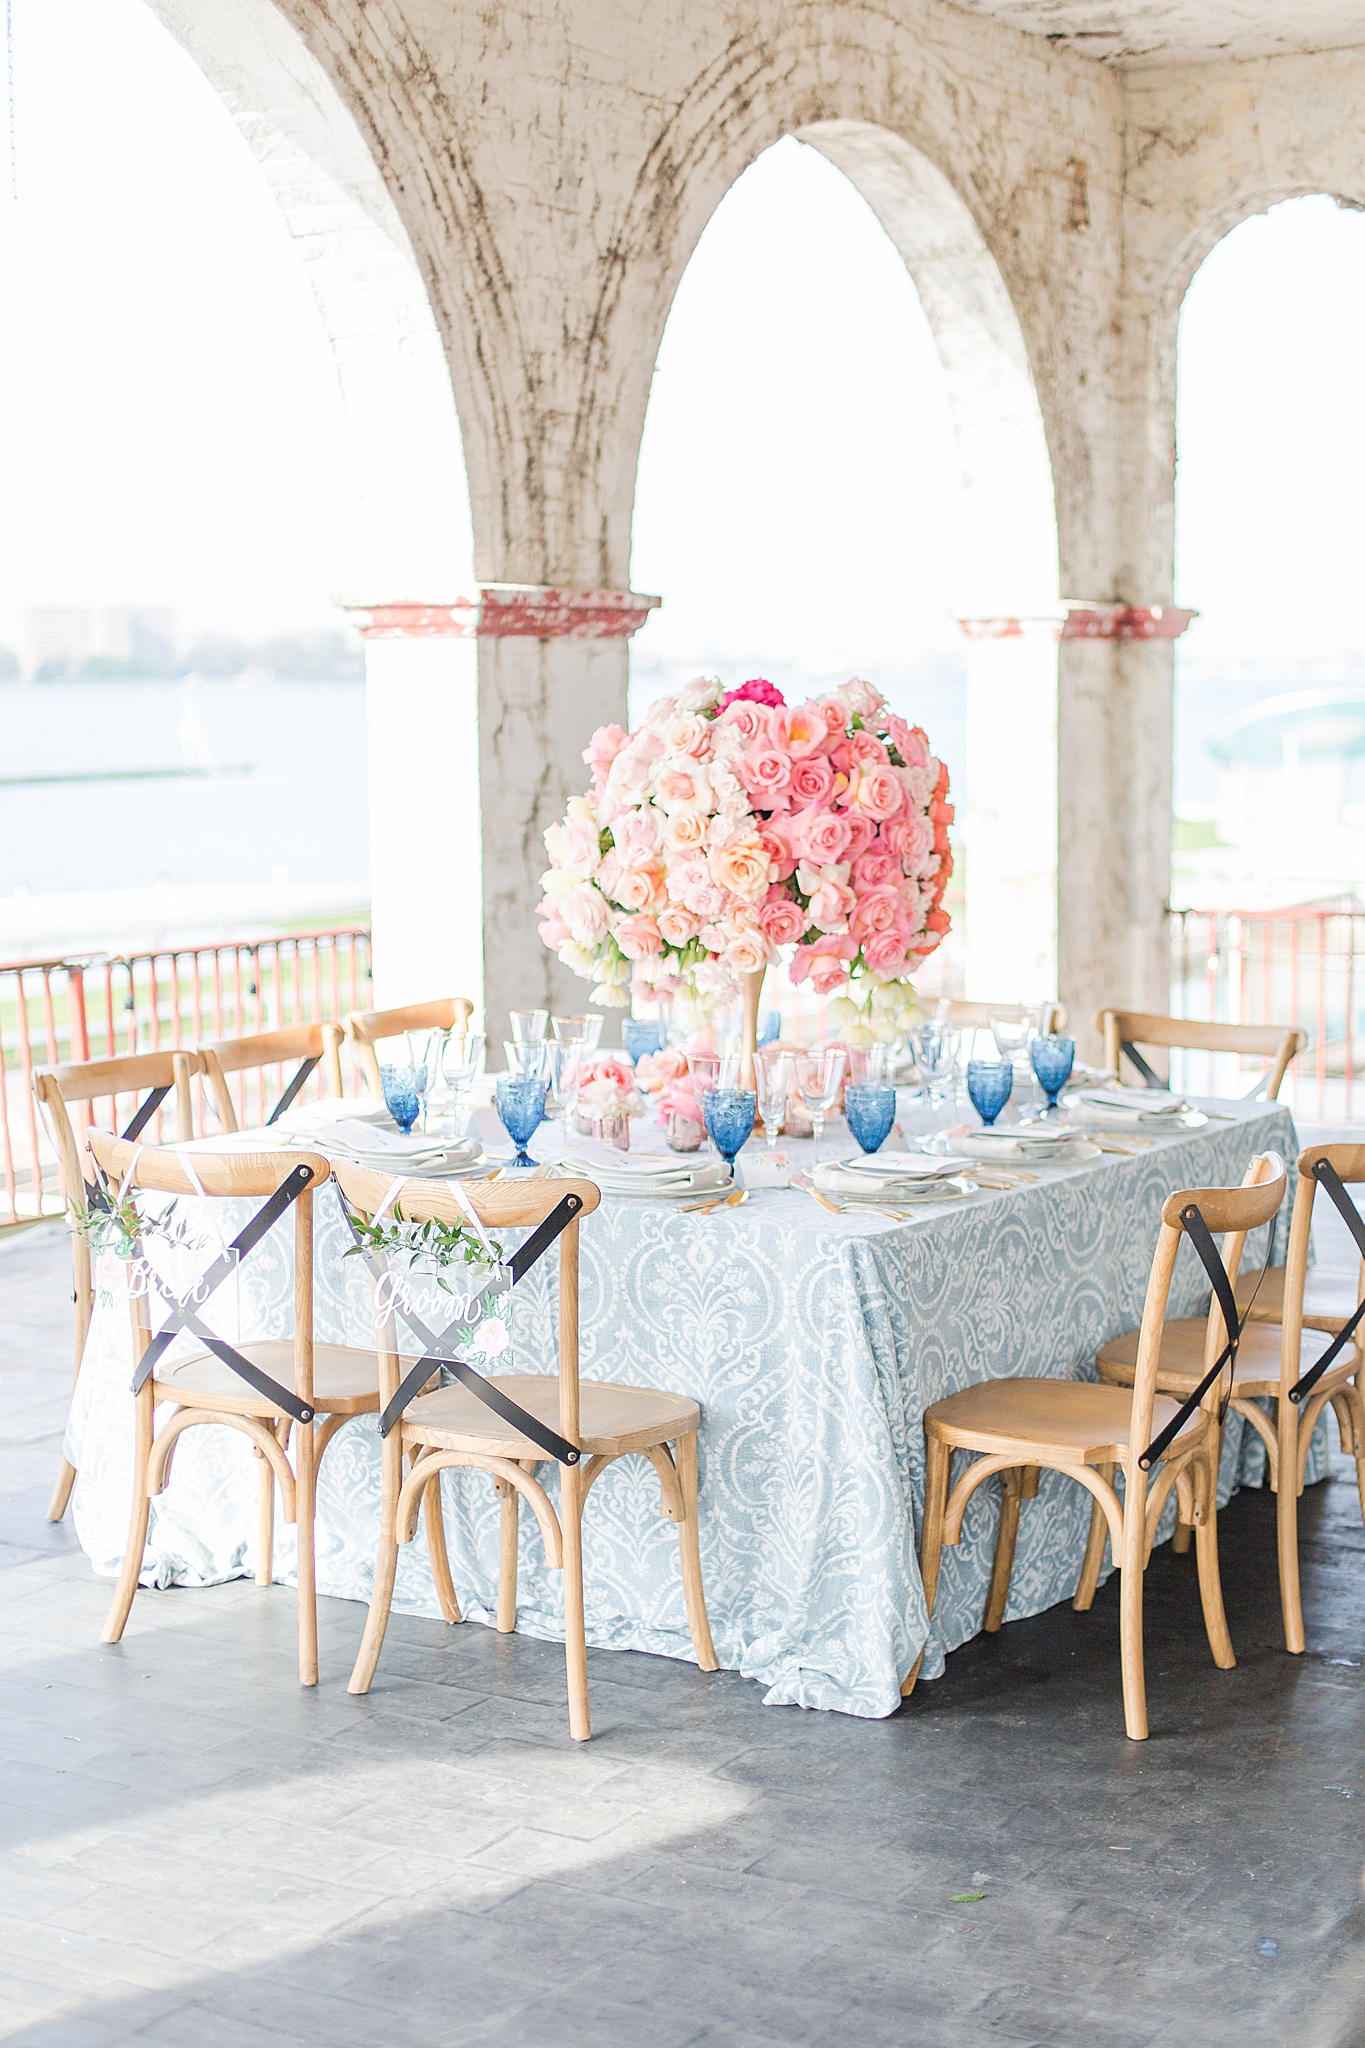 intimate-elopement-wedding-photography-at-belle-isle-boat-house-detroit-michigan-by-courtney-carolyn-photography_0037.jpg